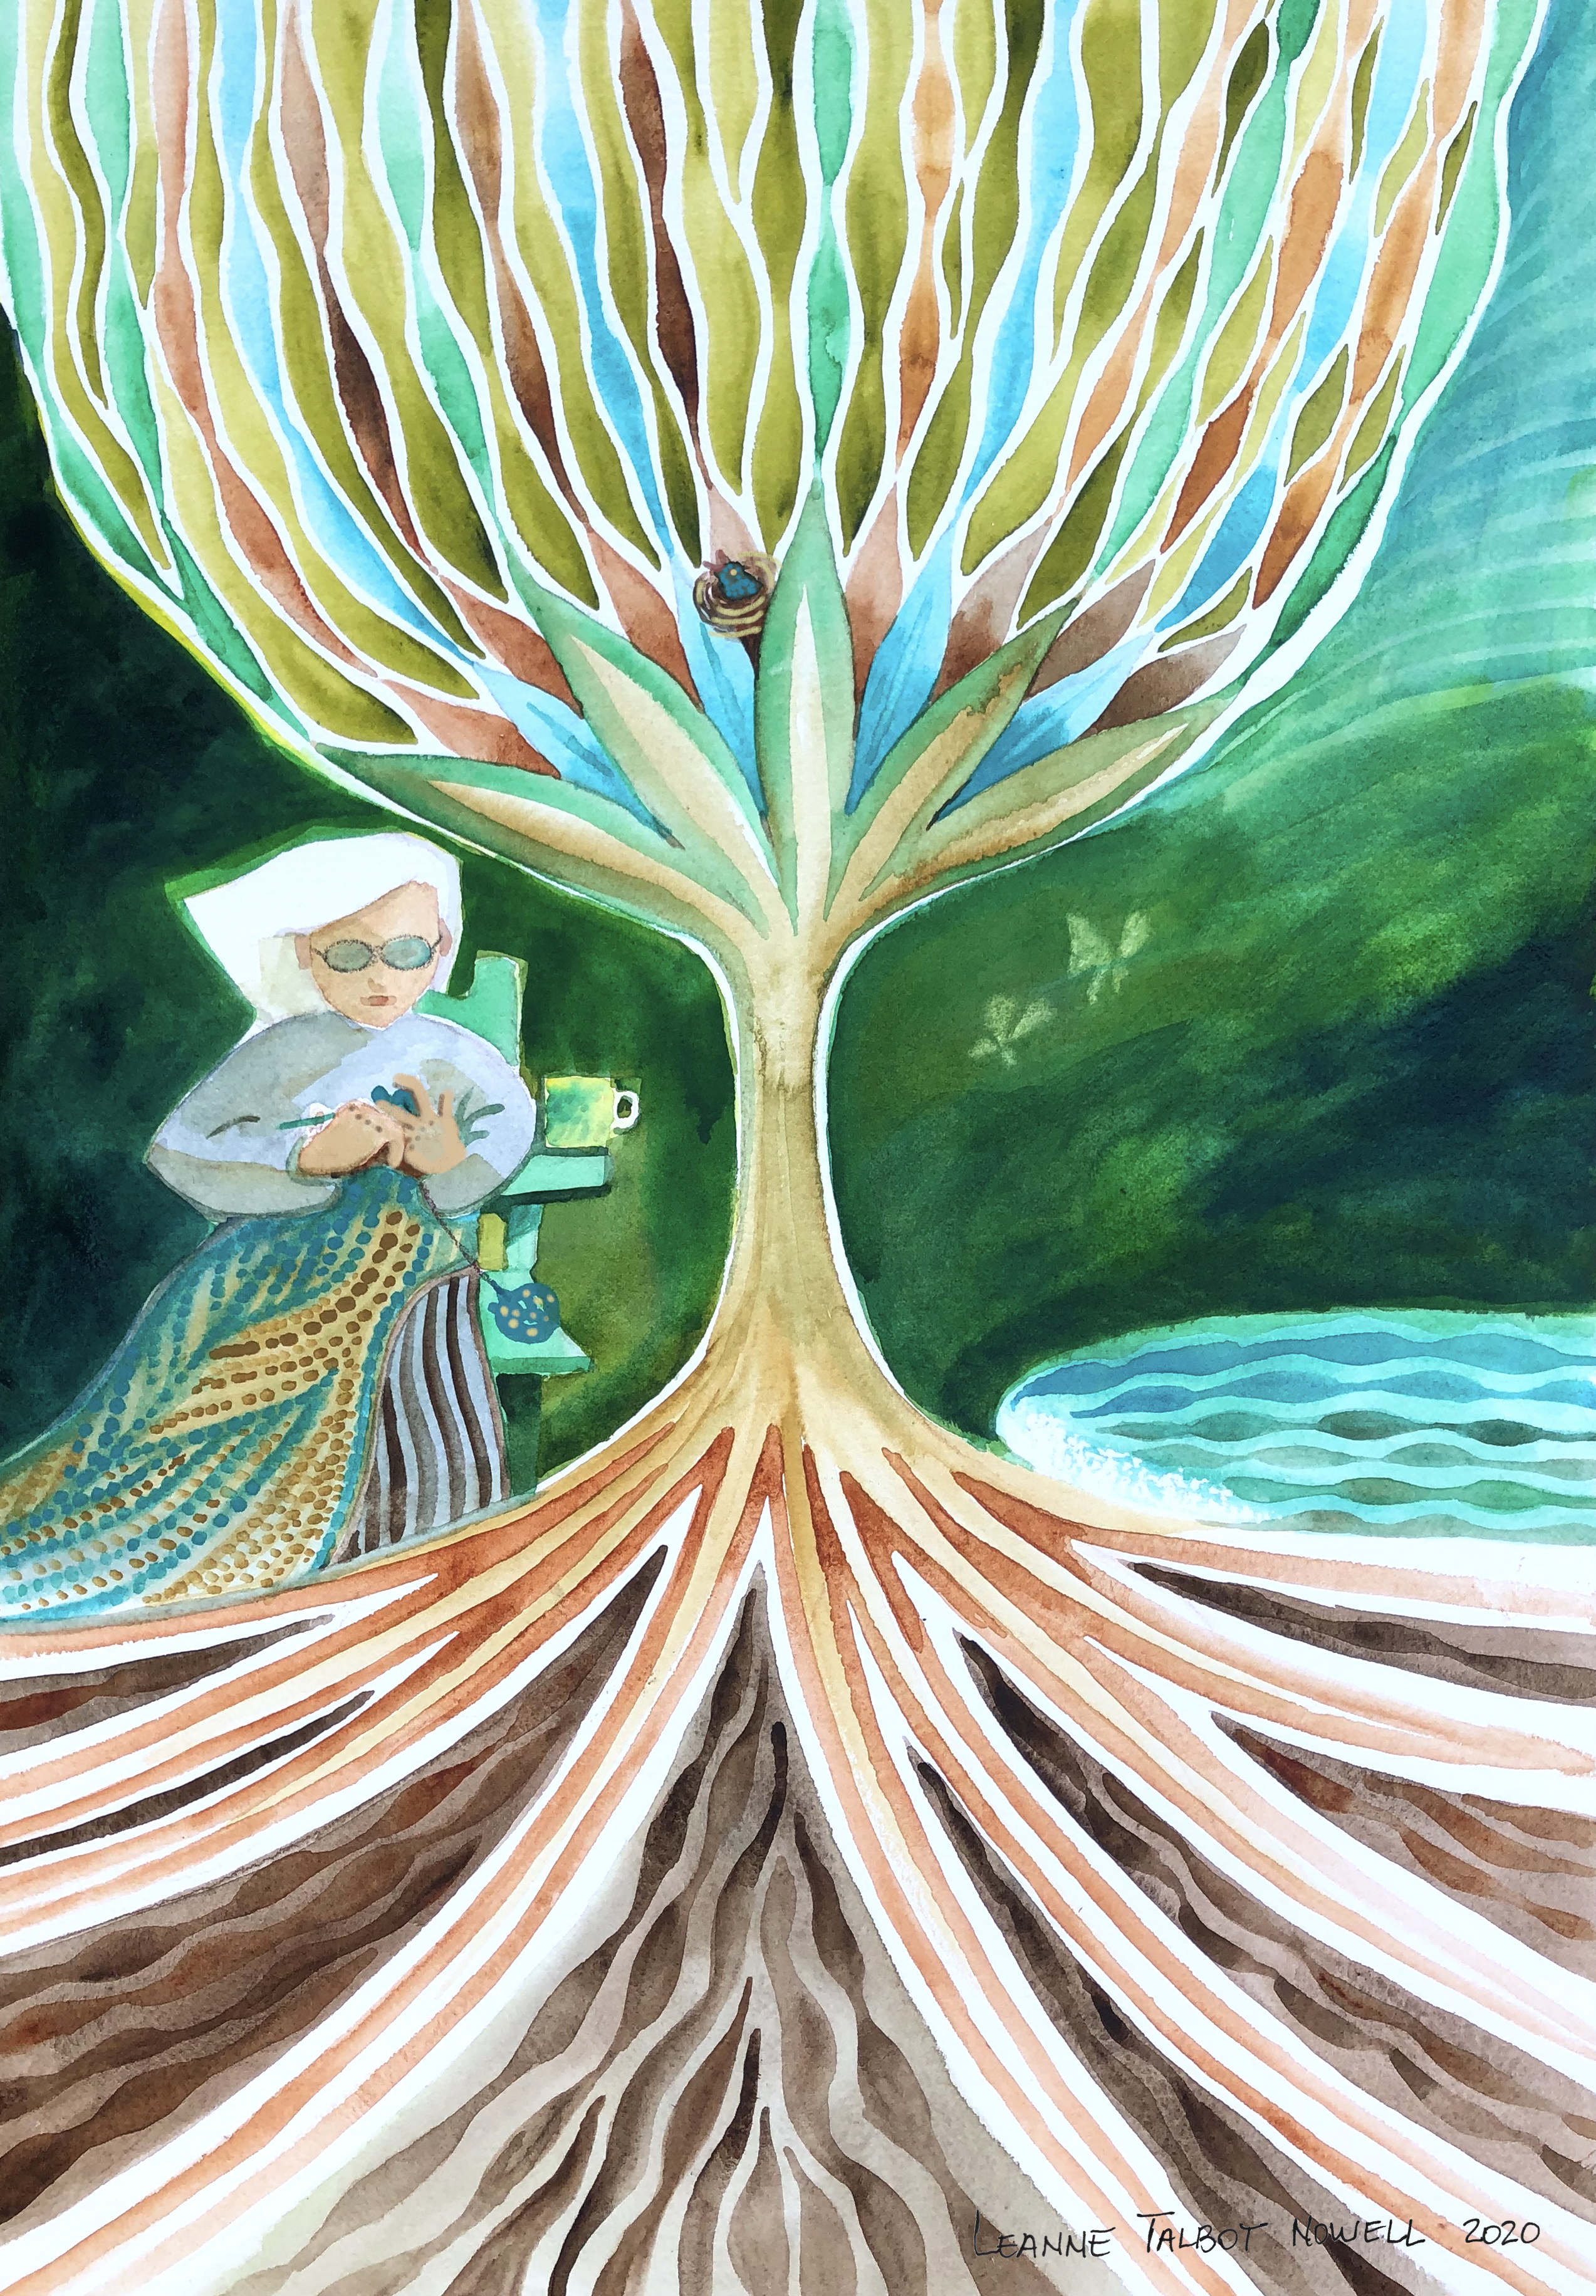 Mother under her tree, watercolour painting by Leanne Talbot Nowell